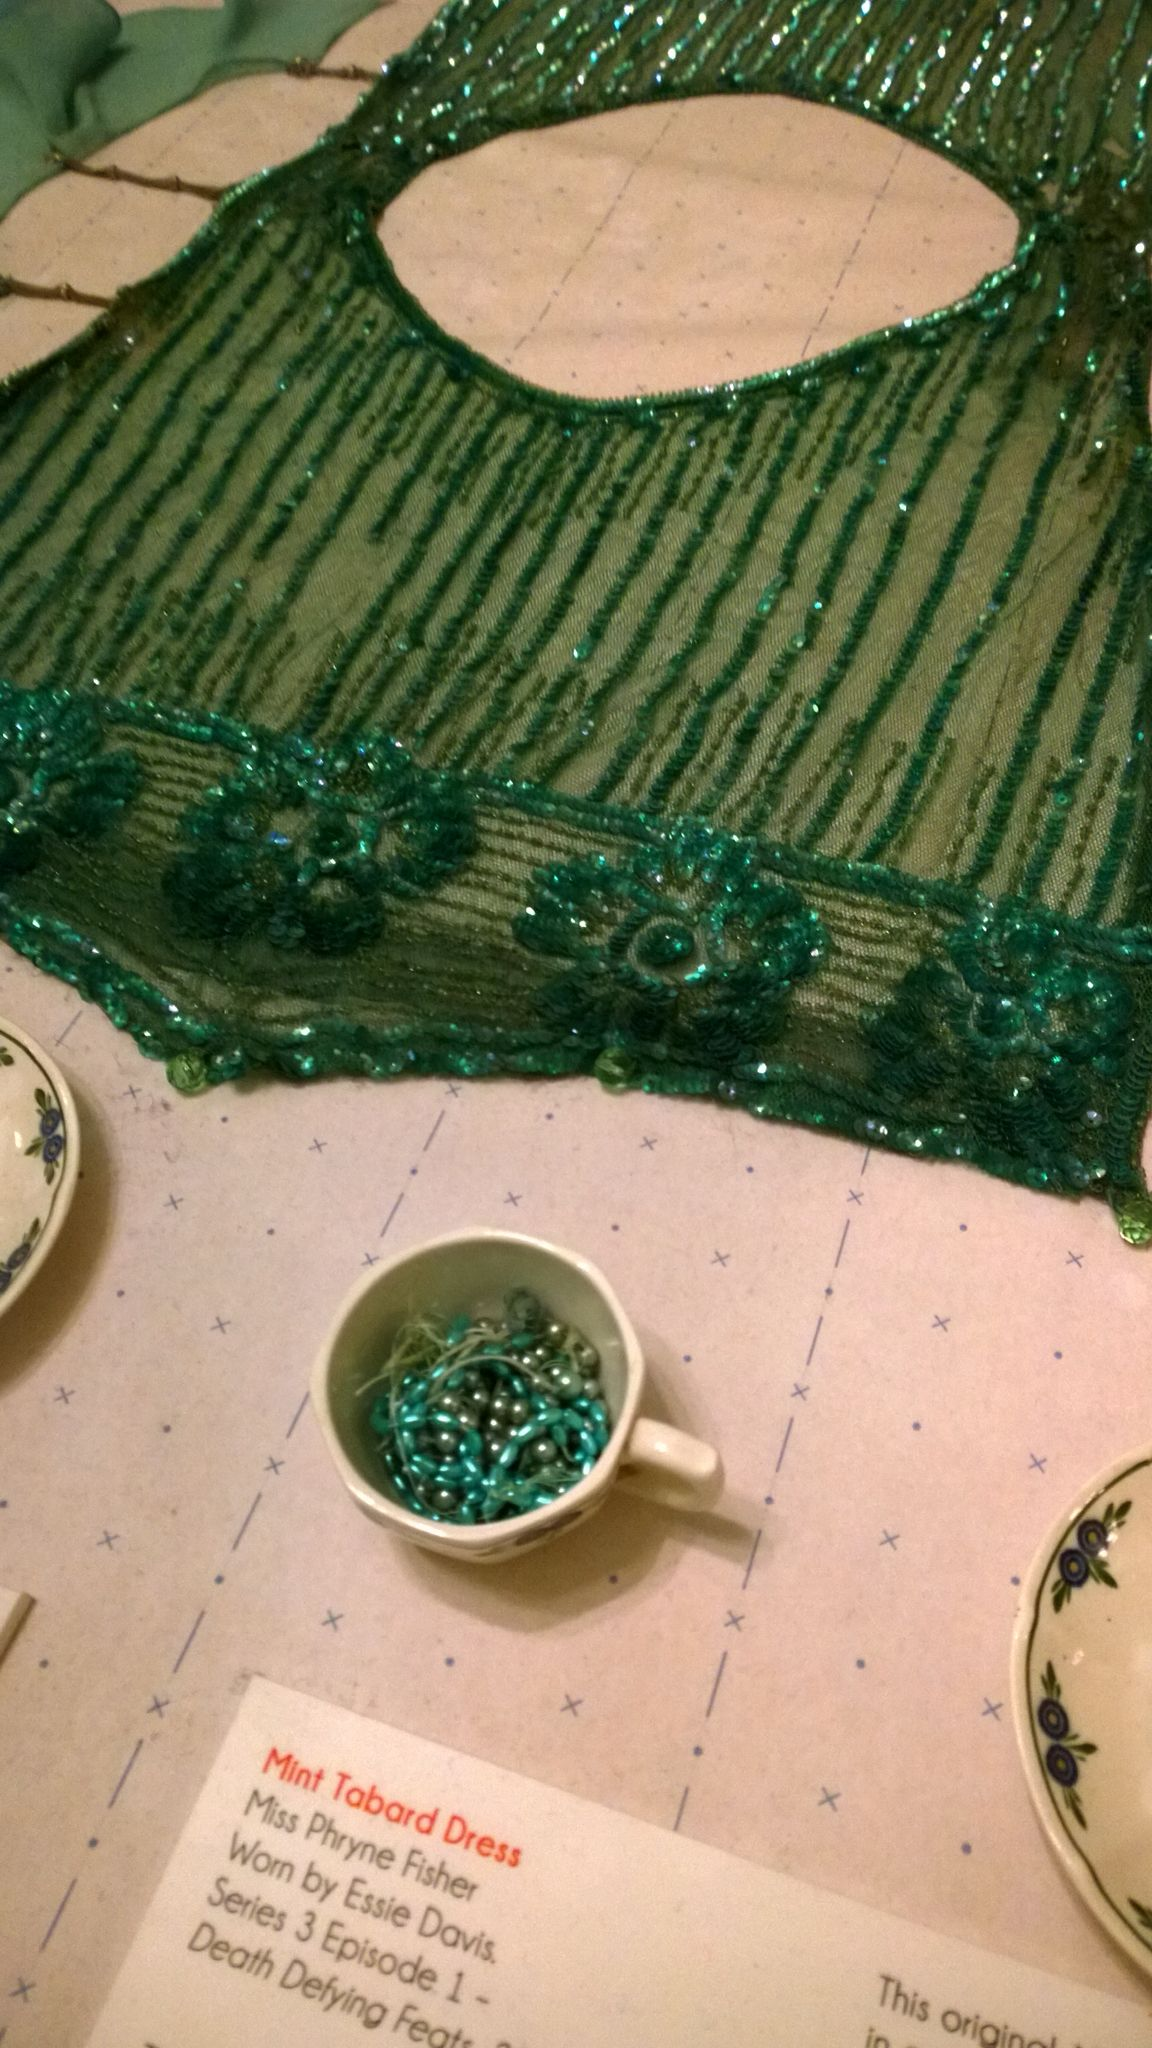 860748921e99 Beading detail on Miss Fisher s mint tabard dress. This was probably my  favourite dress from season 3  worn by Phryne during Jack s drunken speech  in  Death ...